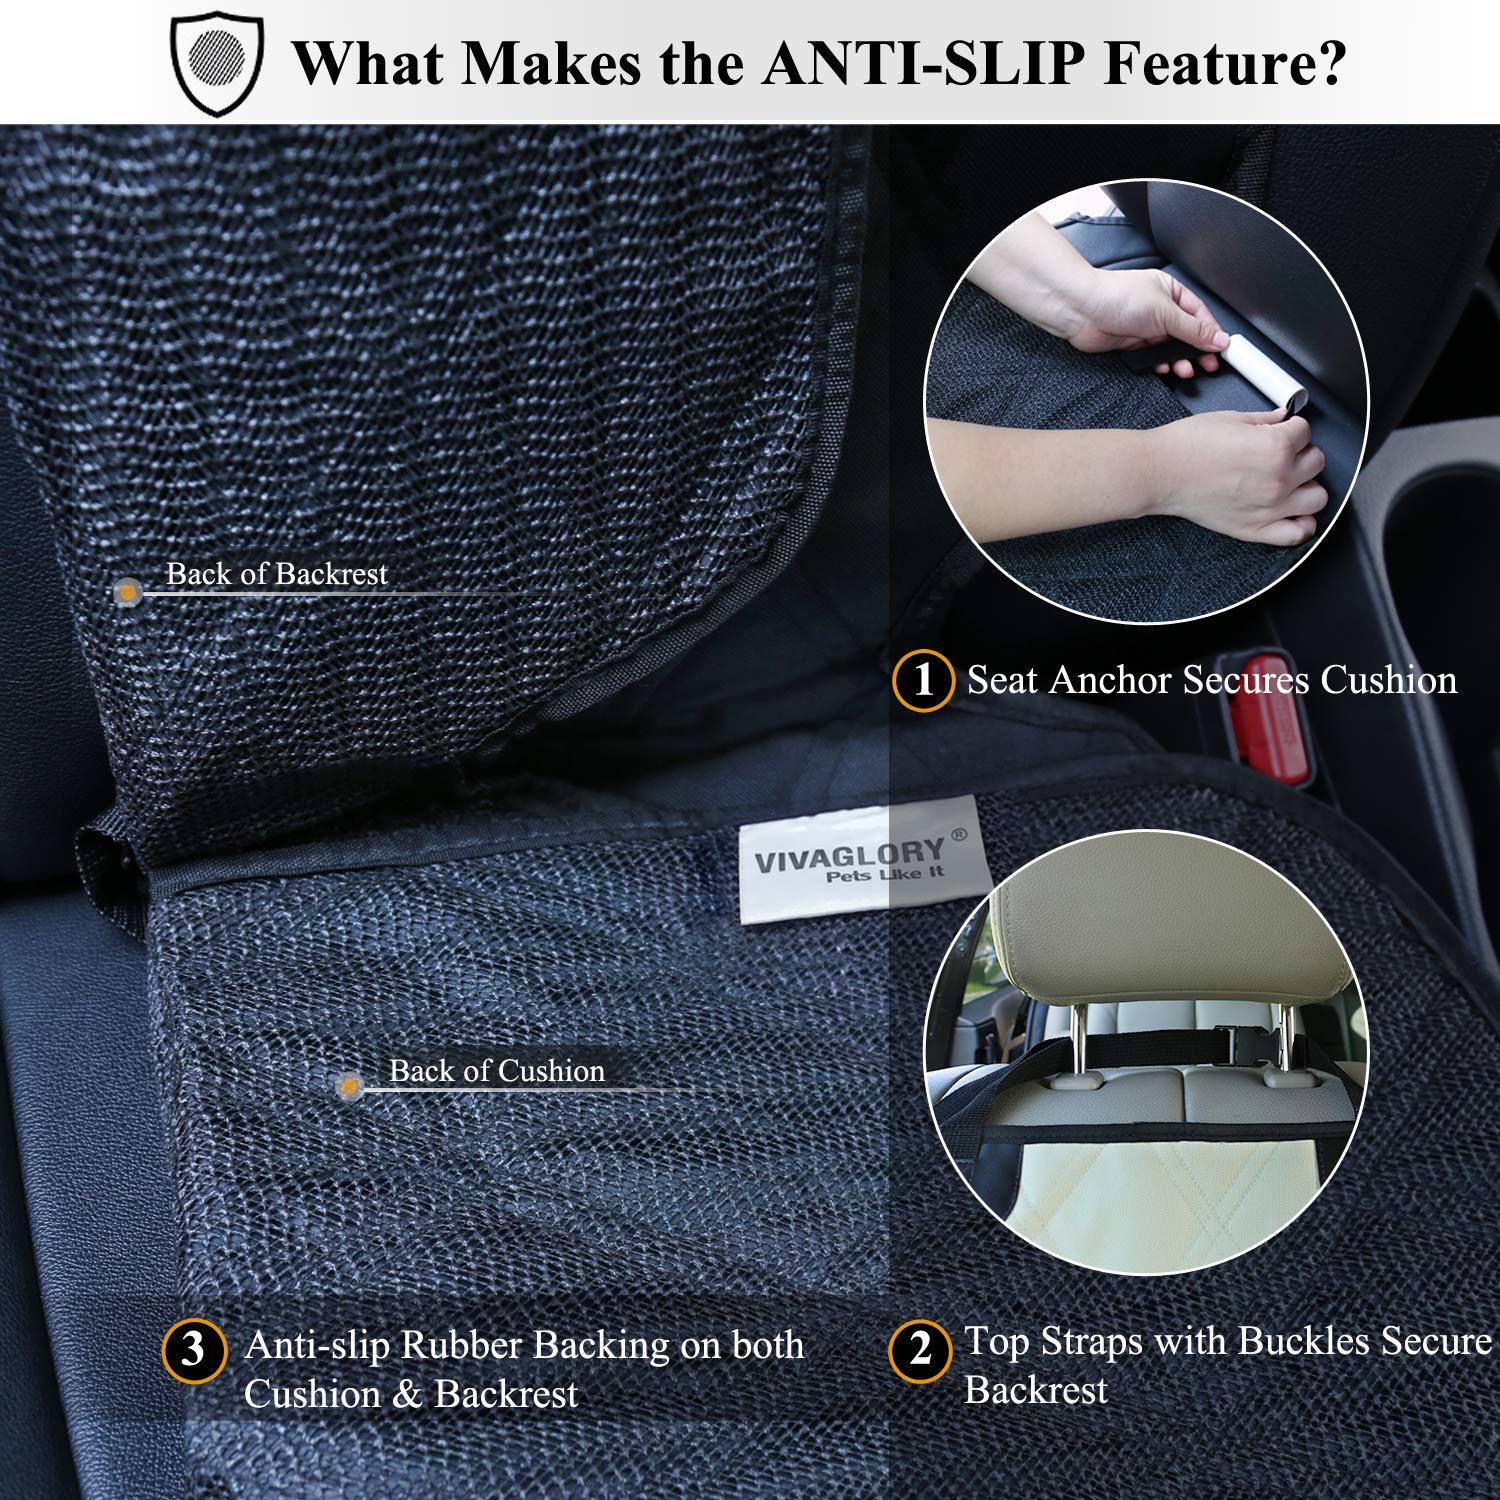 Vivaglory Front Dog Seat Cover Quilted 600 Denier Oxford with Anti-slip Backing for Most Cars SUVs /& MPVs Black No-skirt Design Protectors for Bucket Seats